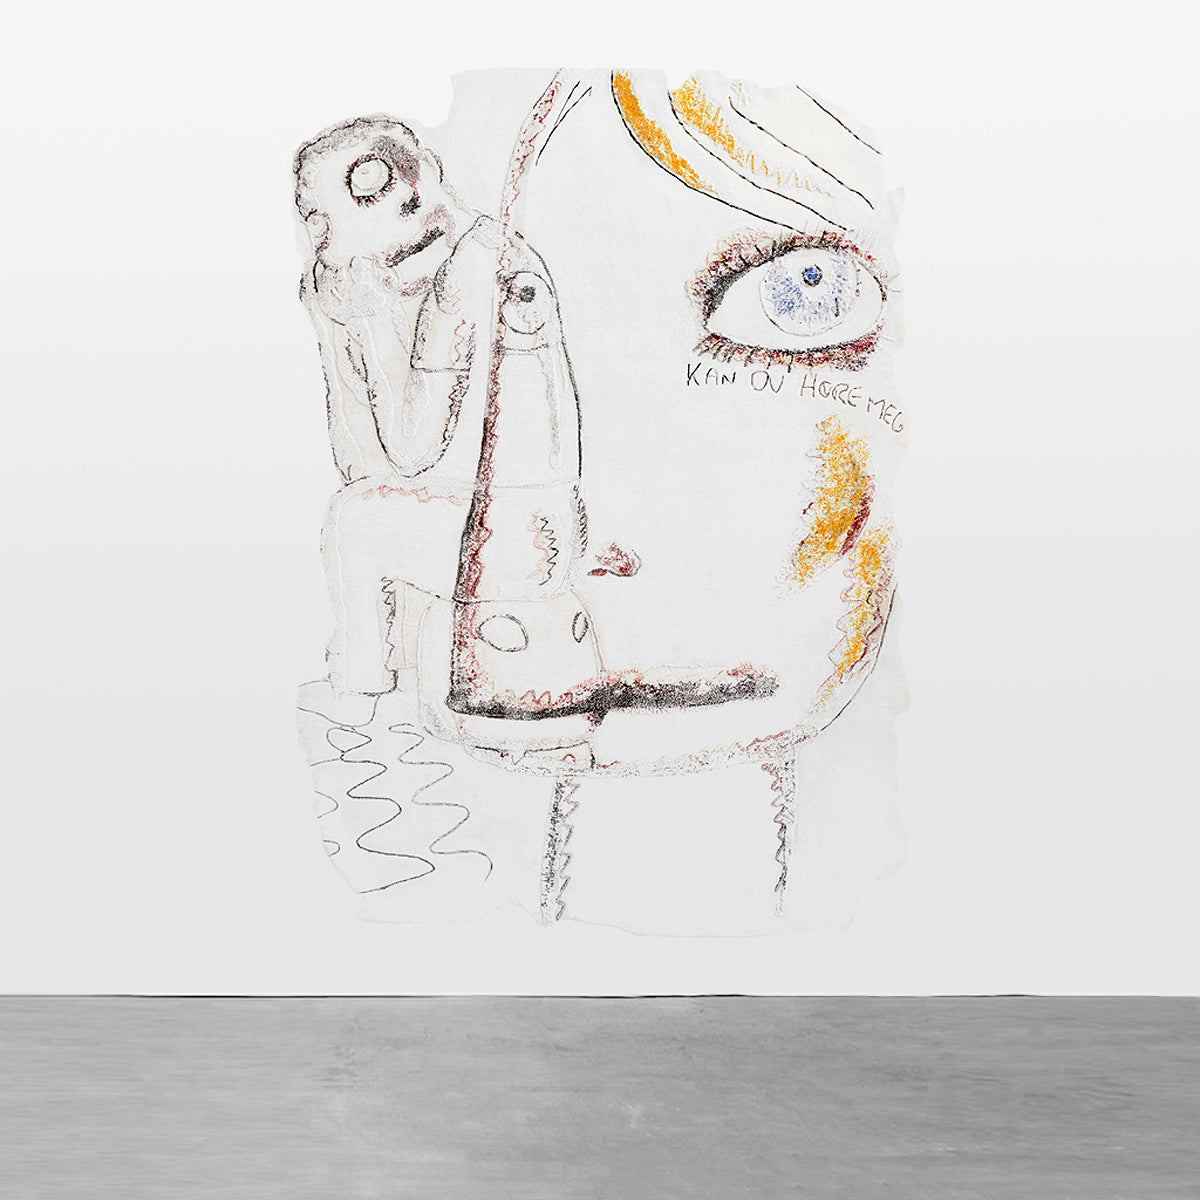 BJARNE MELGAARD, UNTITLED (01), 2017